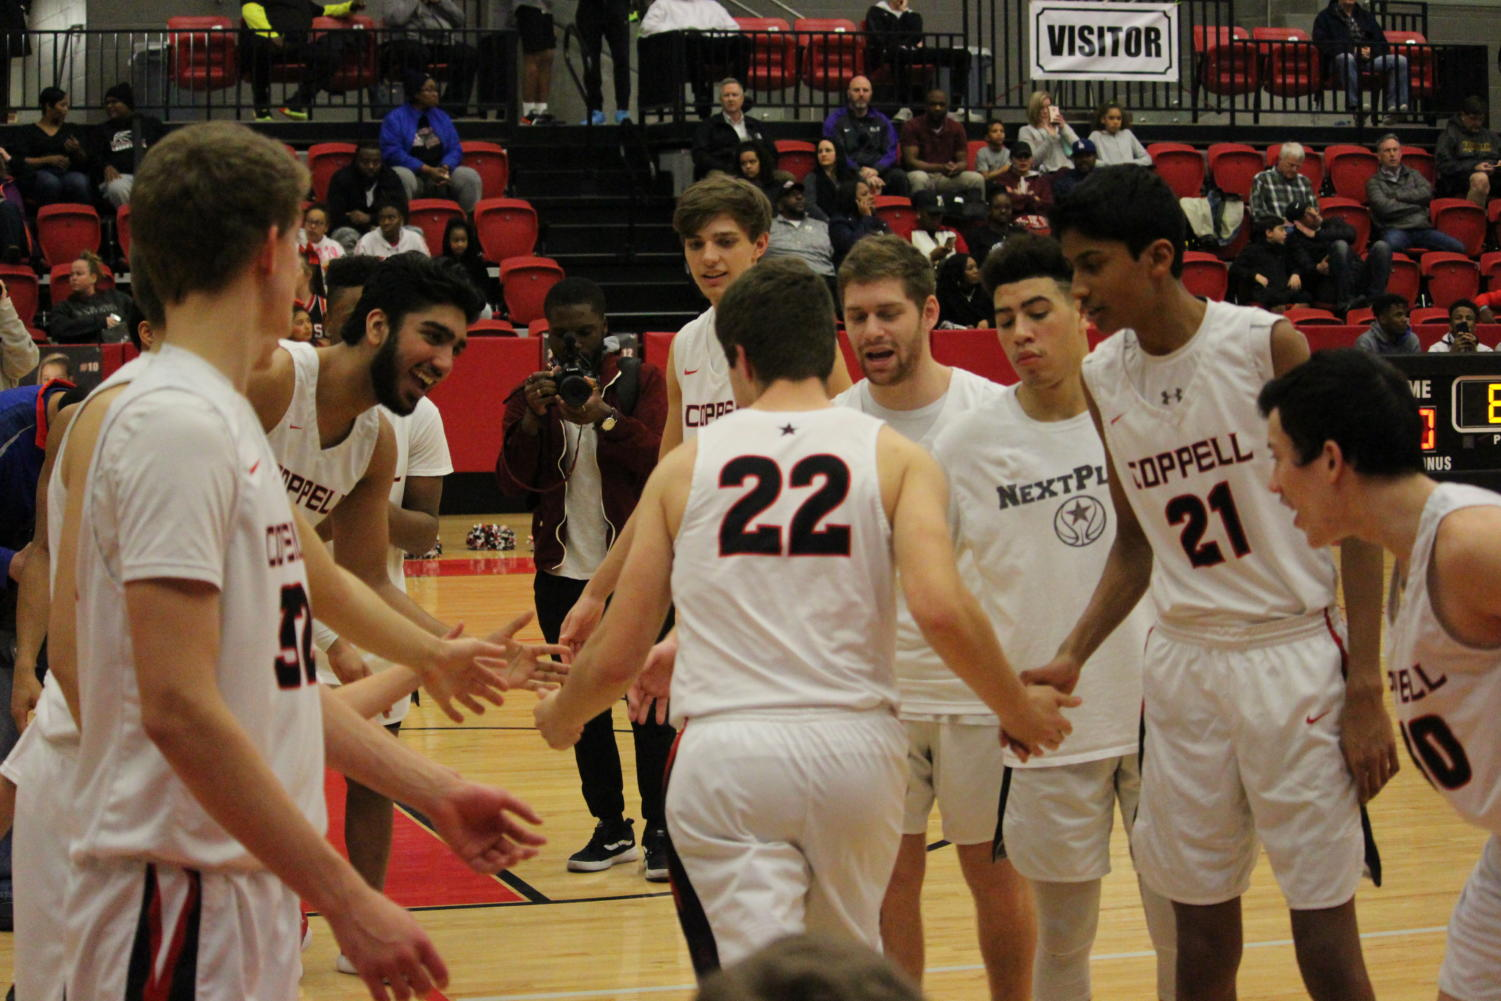 Coppell junior Dan Igrisan high fives his fellow teammates as an introduction on Tuesday Jan 22 at CHS arena. The Coppell Cowboys lost to the Lewisville Farmers 71-57.